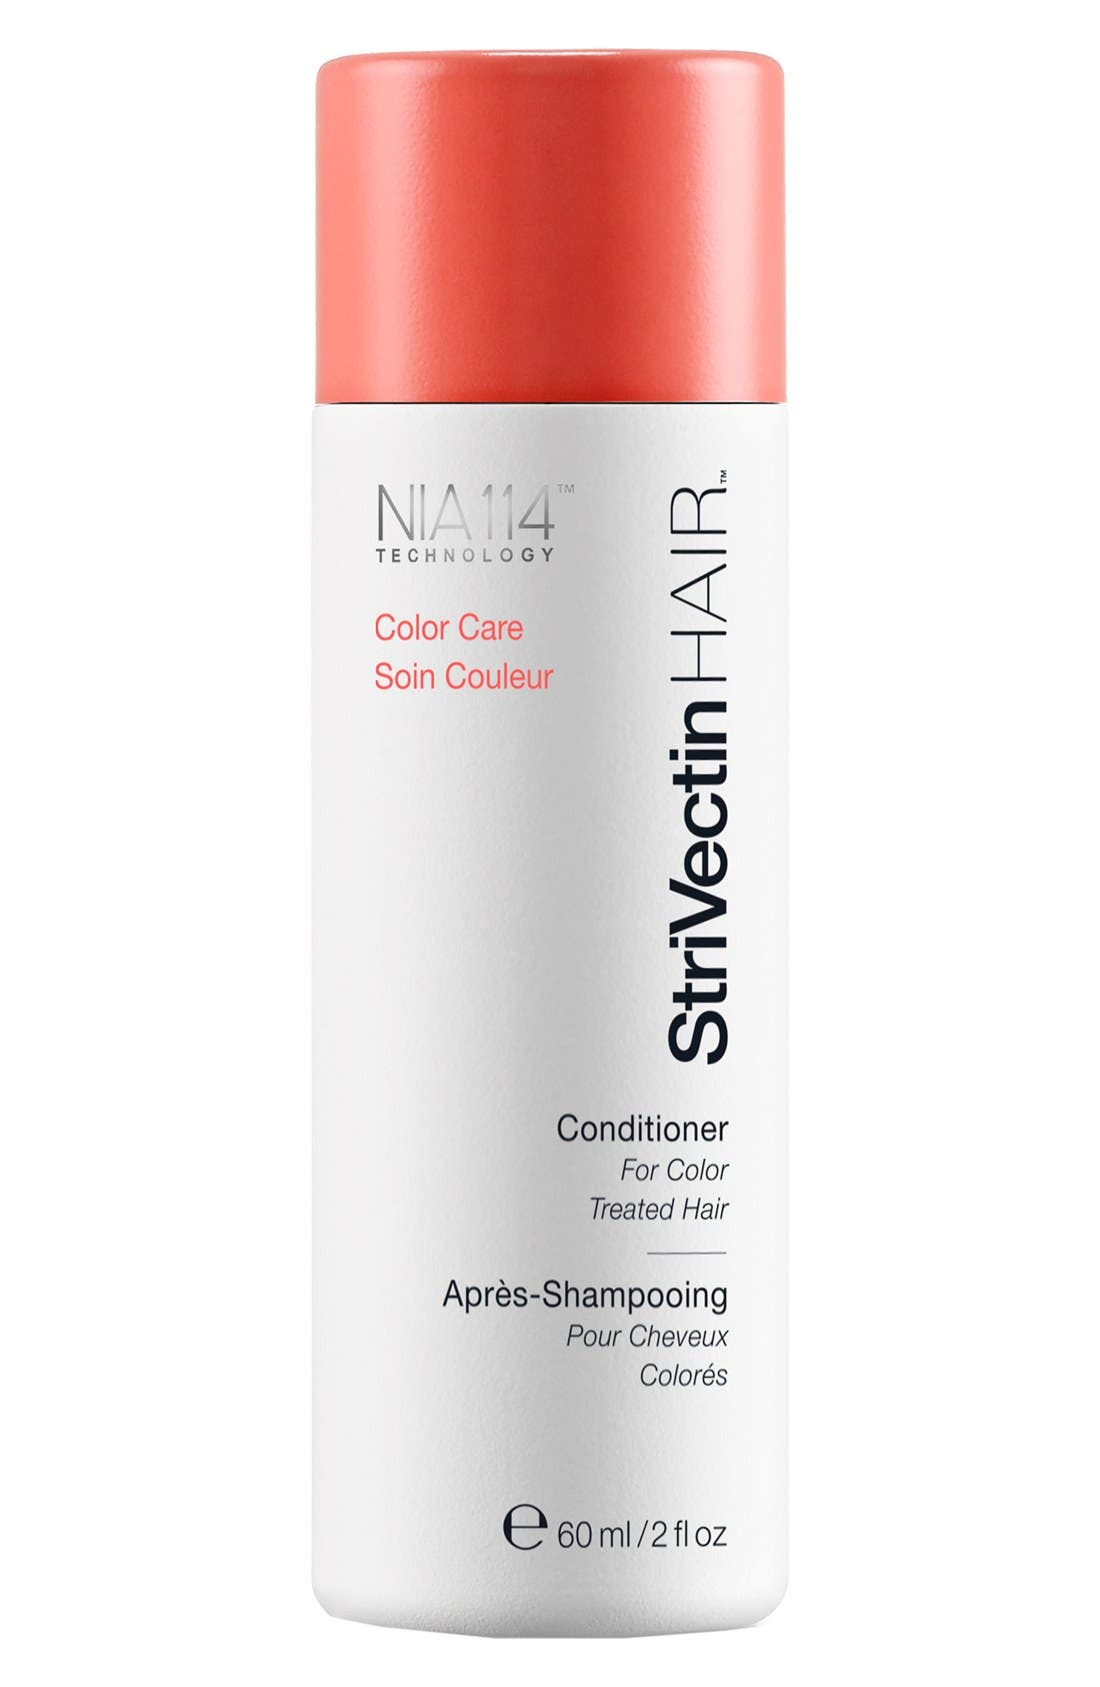 StriVectinHAIR<sup>™</sup> 'Color Care' Conditioner for Color Treated Hair,                             Main thumbnail 1, color,                             000